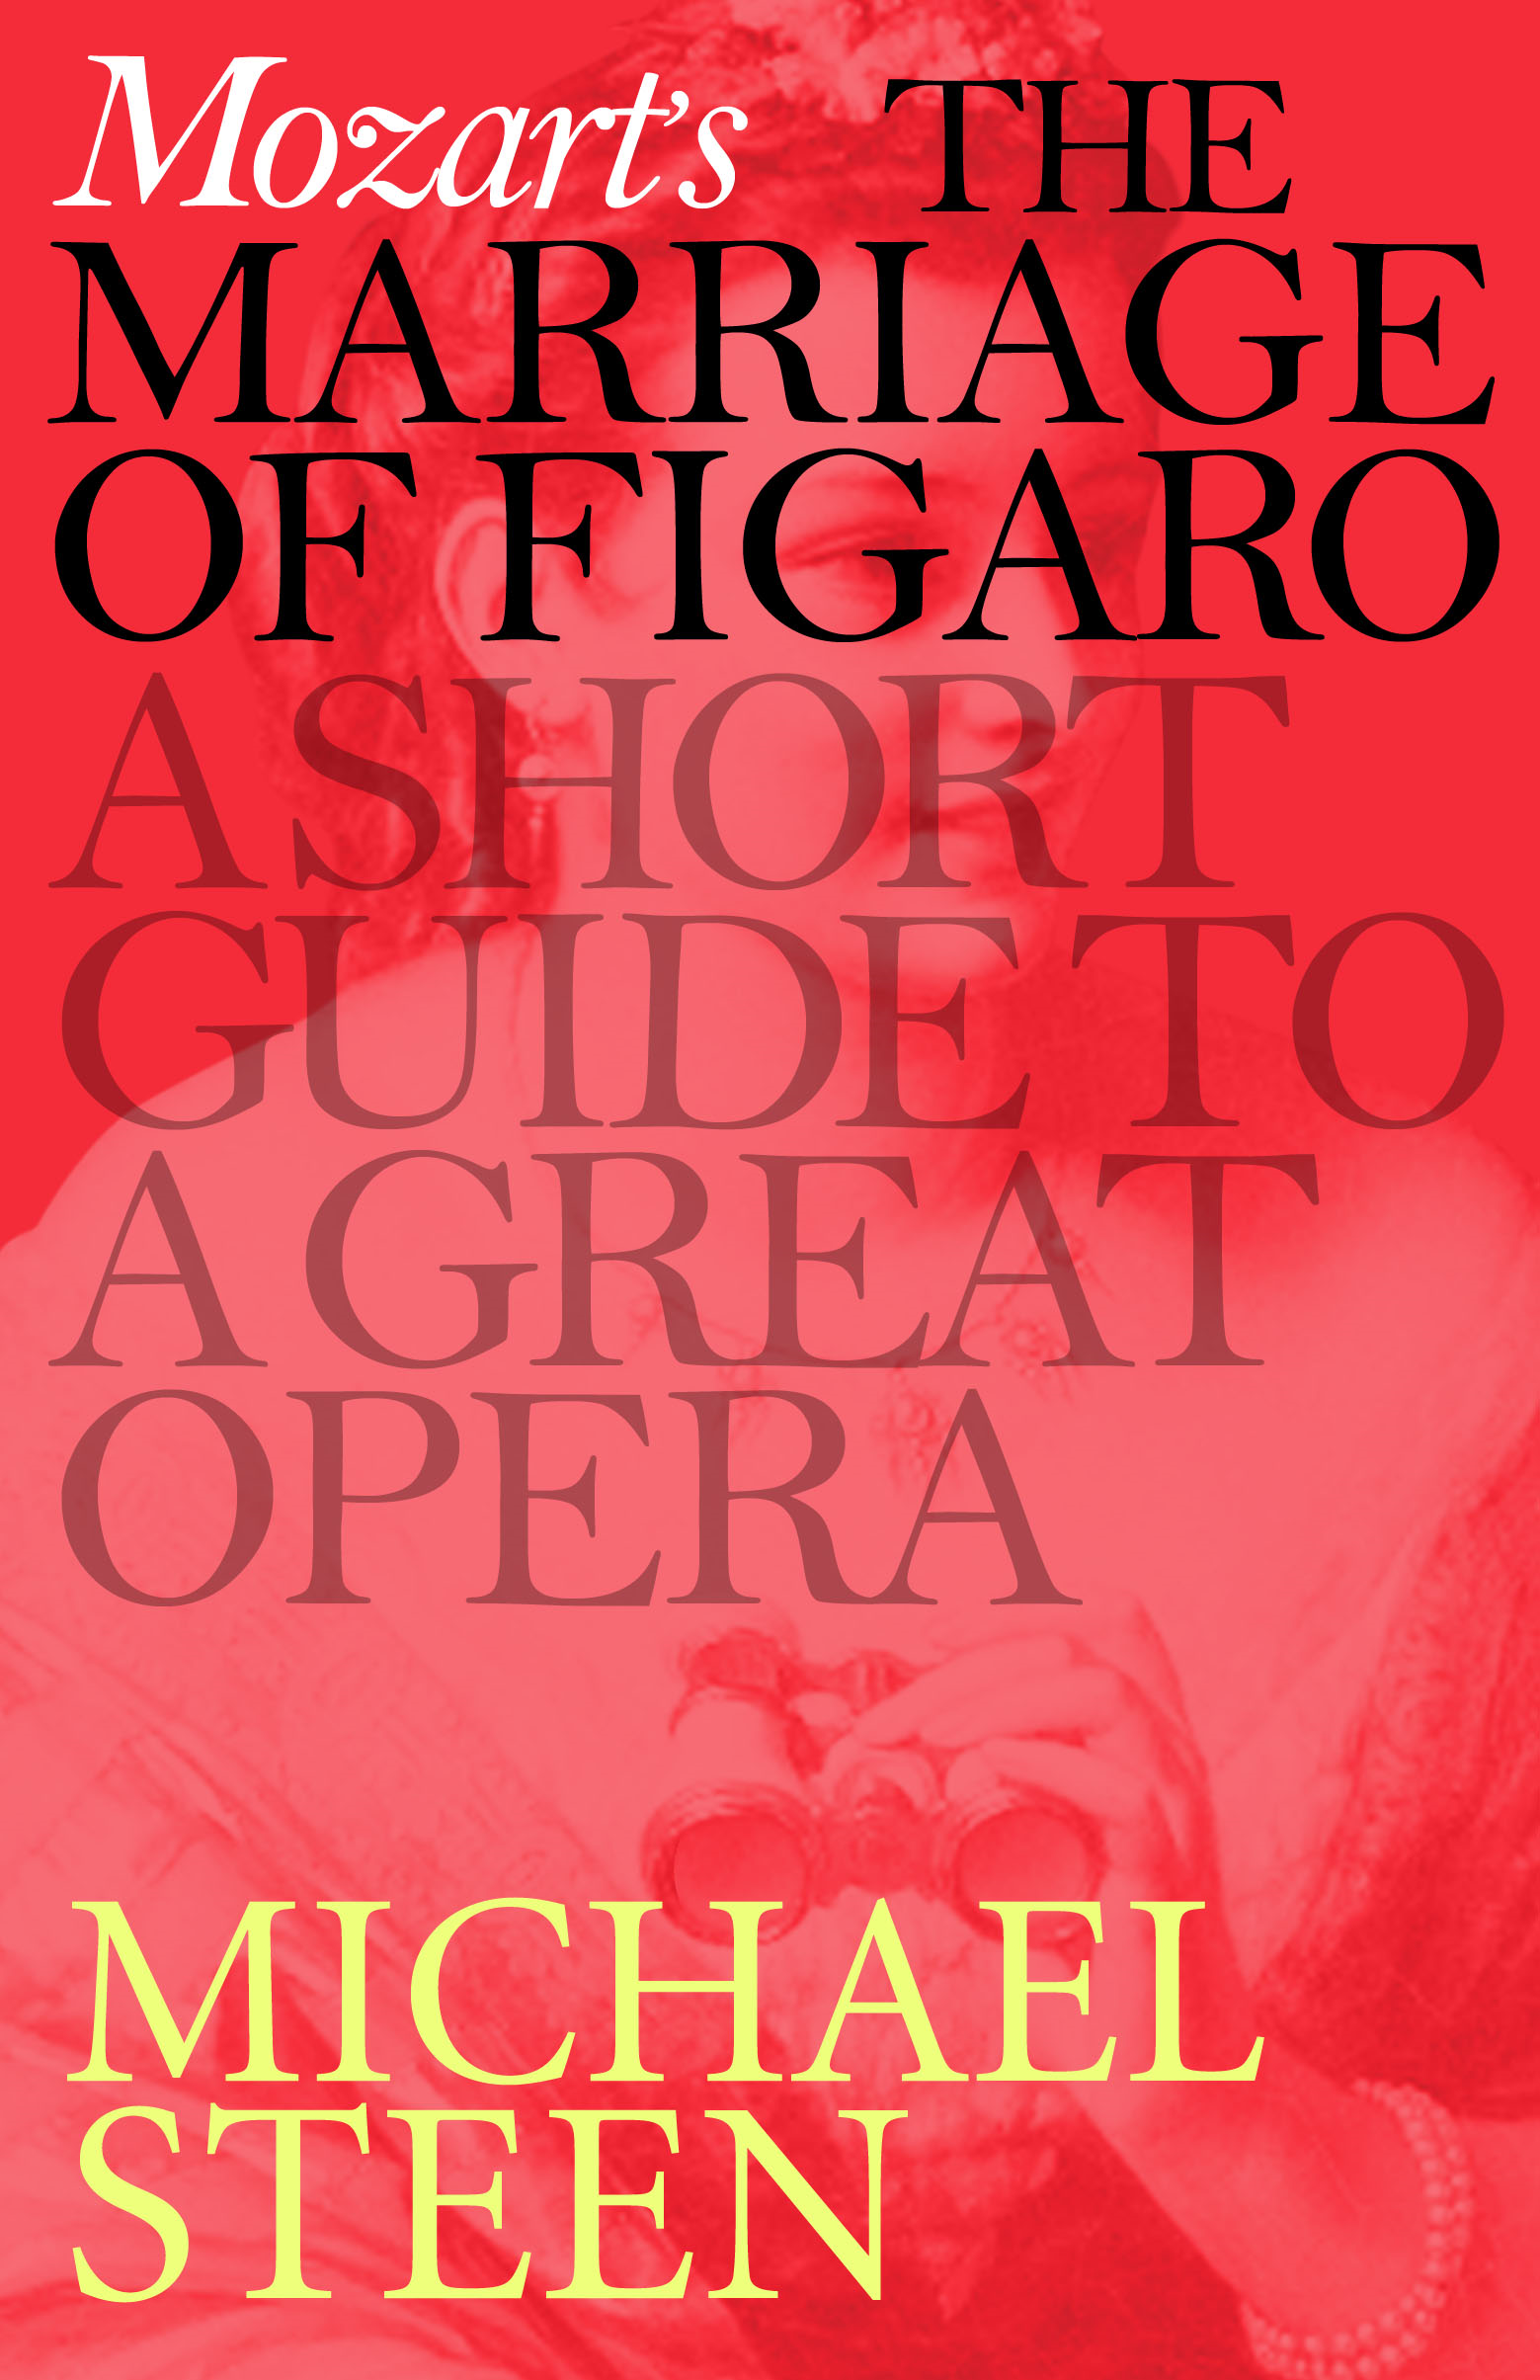 Mozart's Marriage of Figaro: A Short Guide to a Great Opera